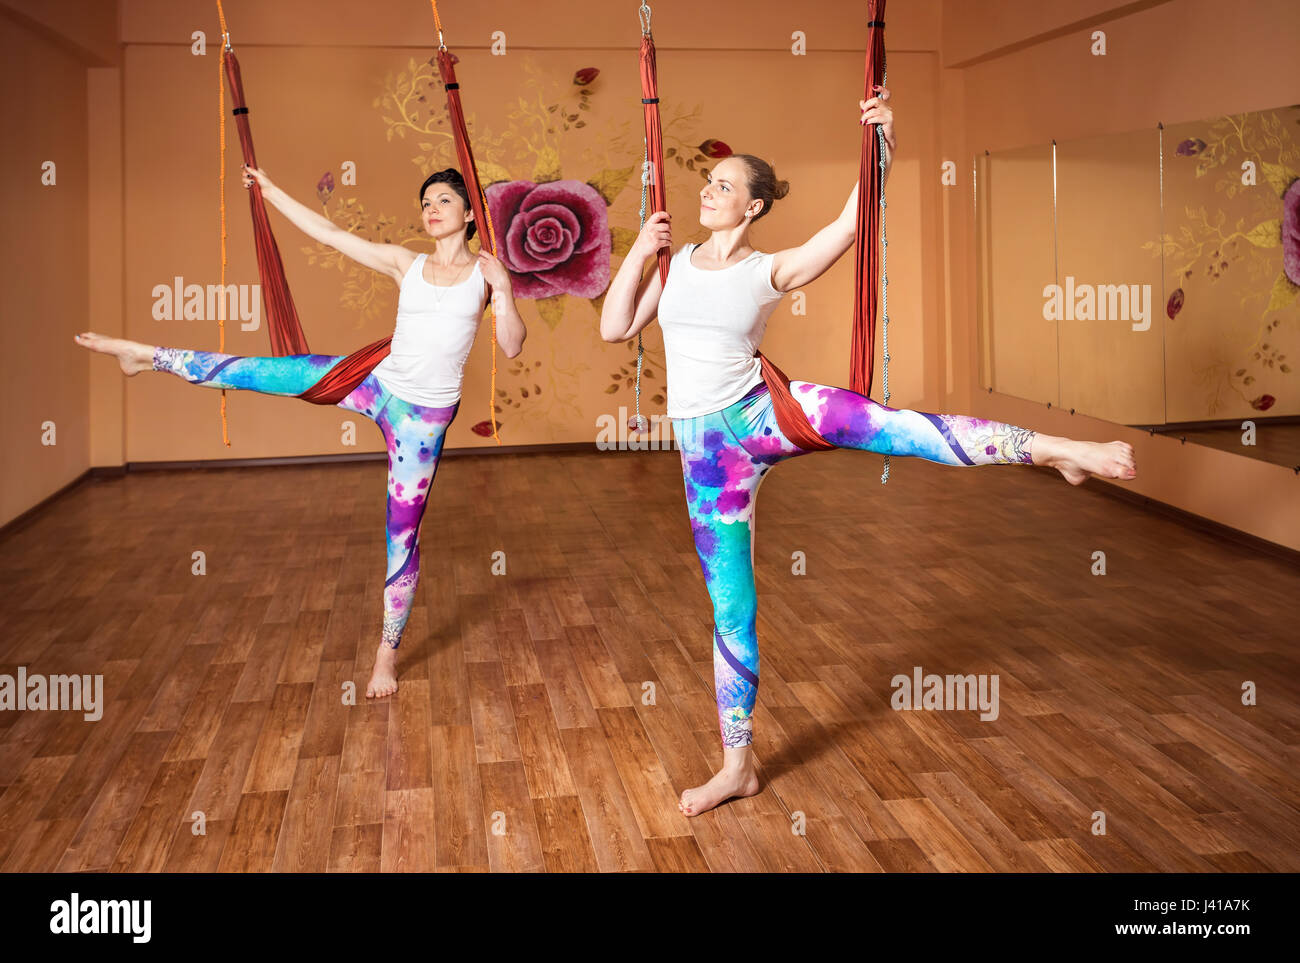 Two Young woman doing antigravity yoga stretching position at wellness studio with rose on the wall - Stock Image